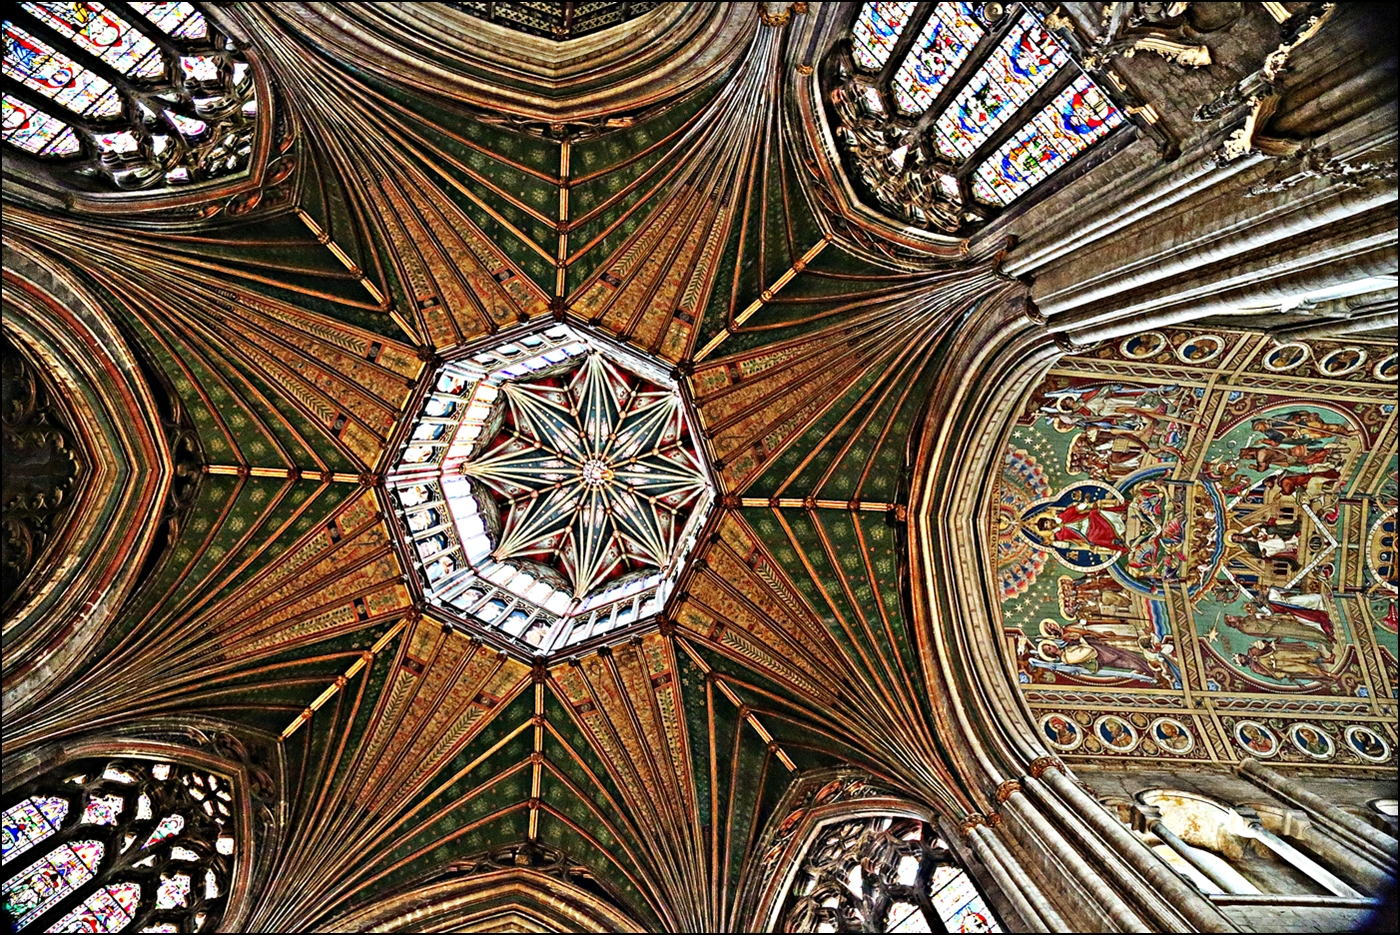 ELY OCTAGON by Rojer Weightman